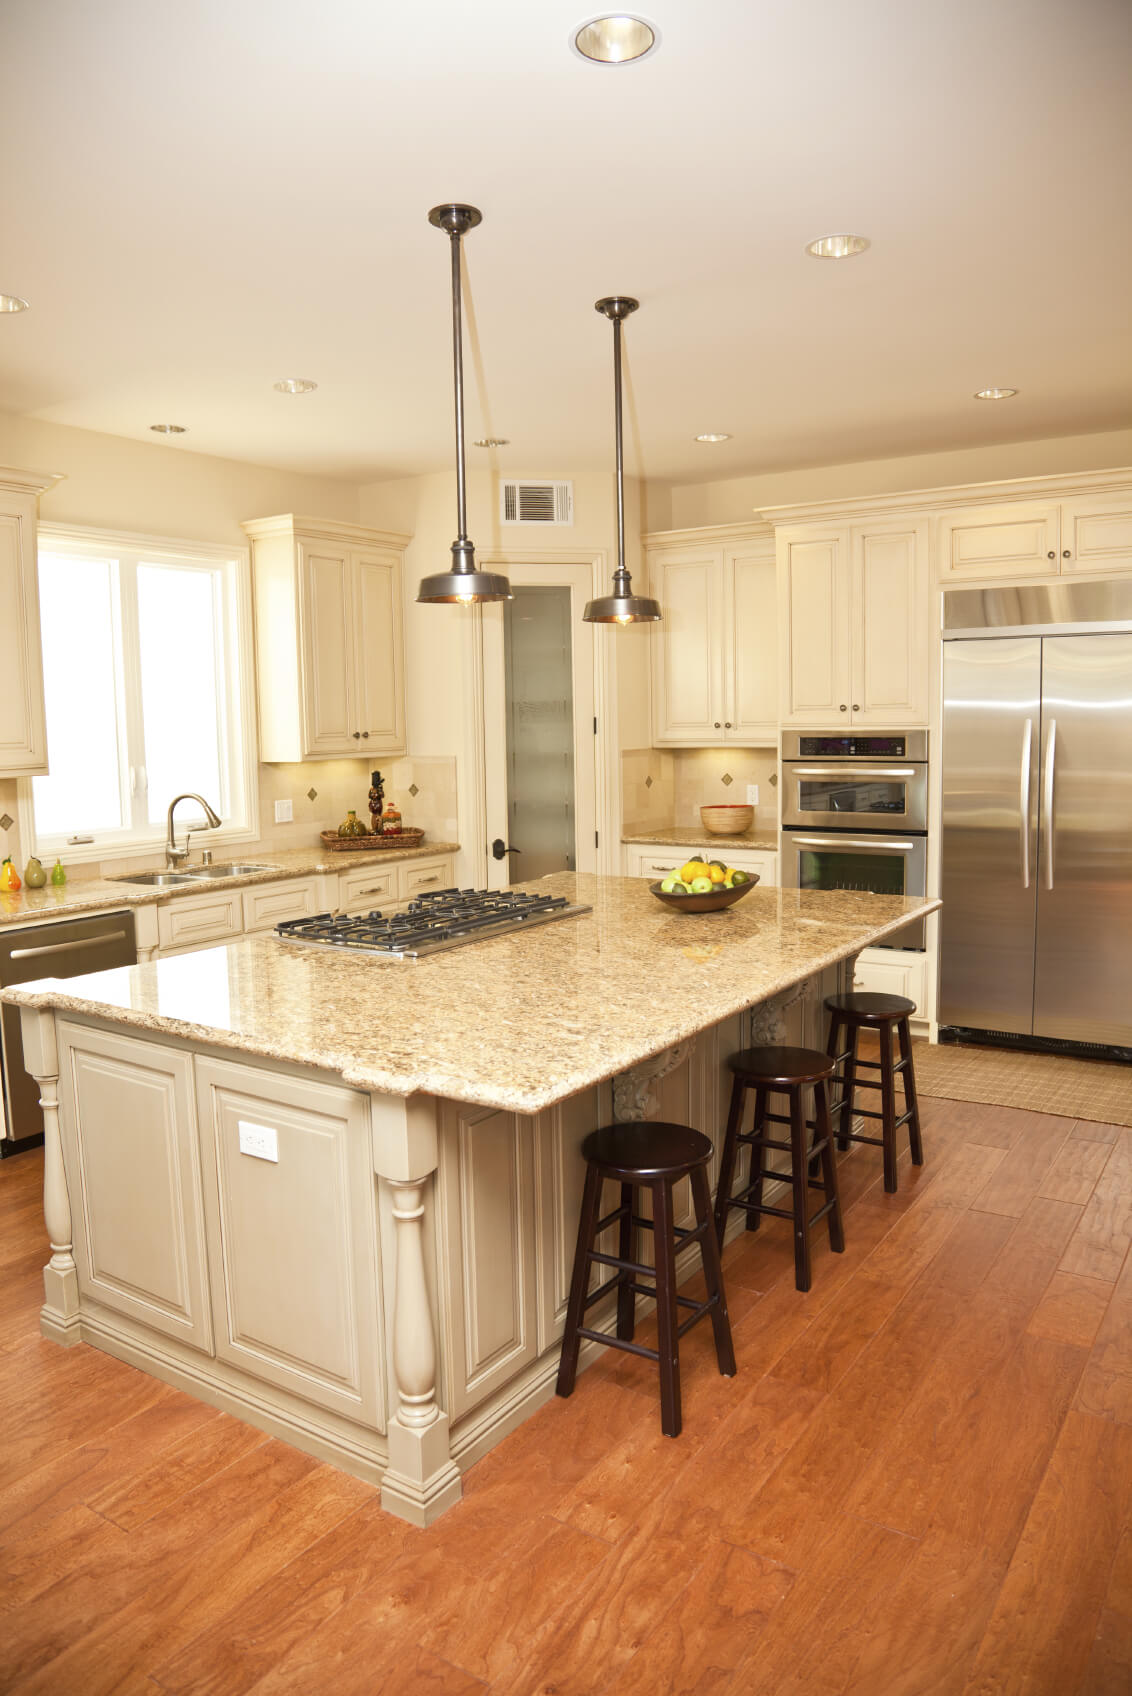 kitchen island with bar seating undermount sinks lowes 399 ideas 2018